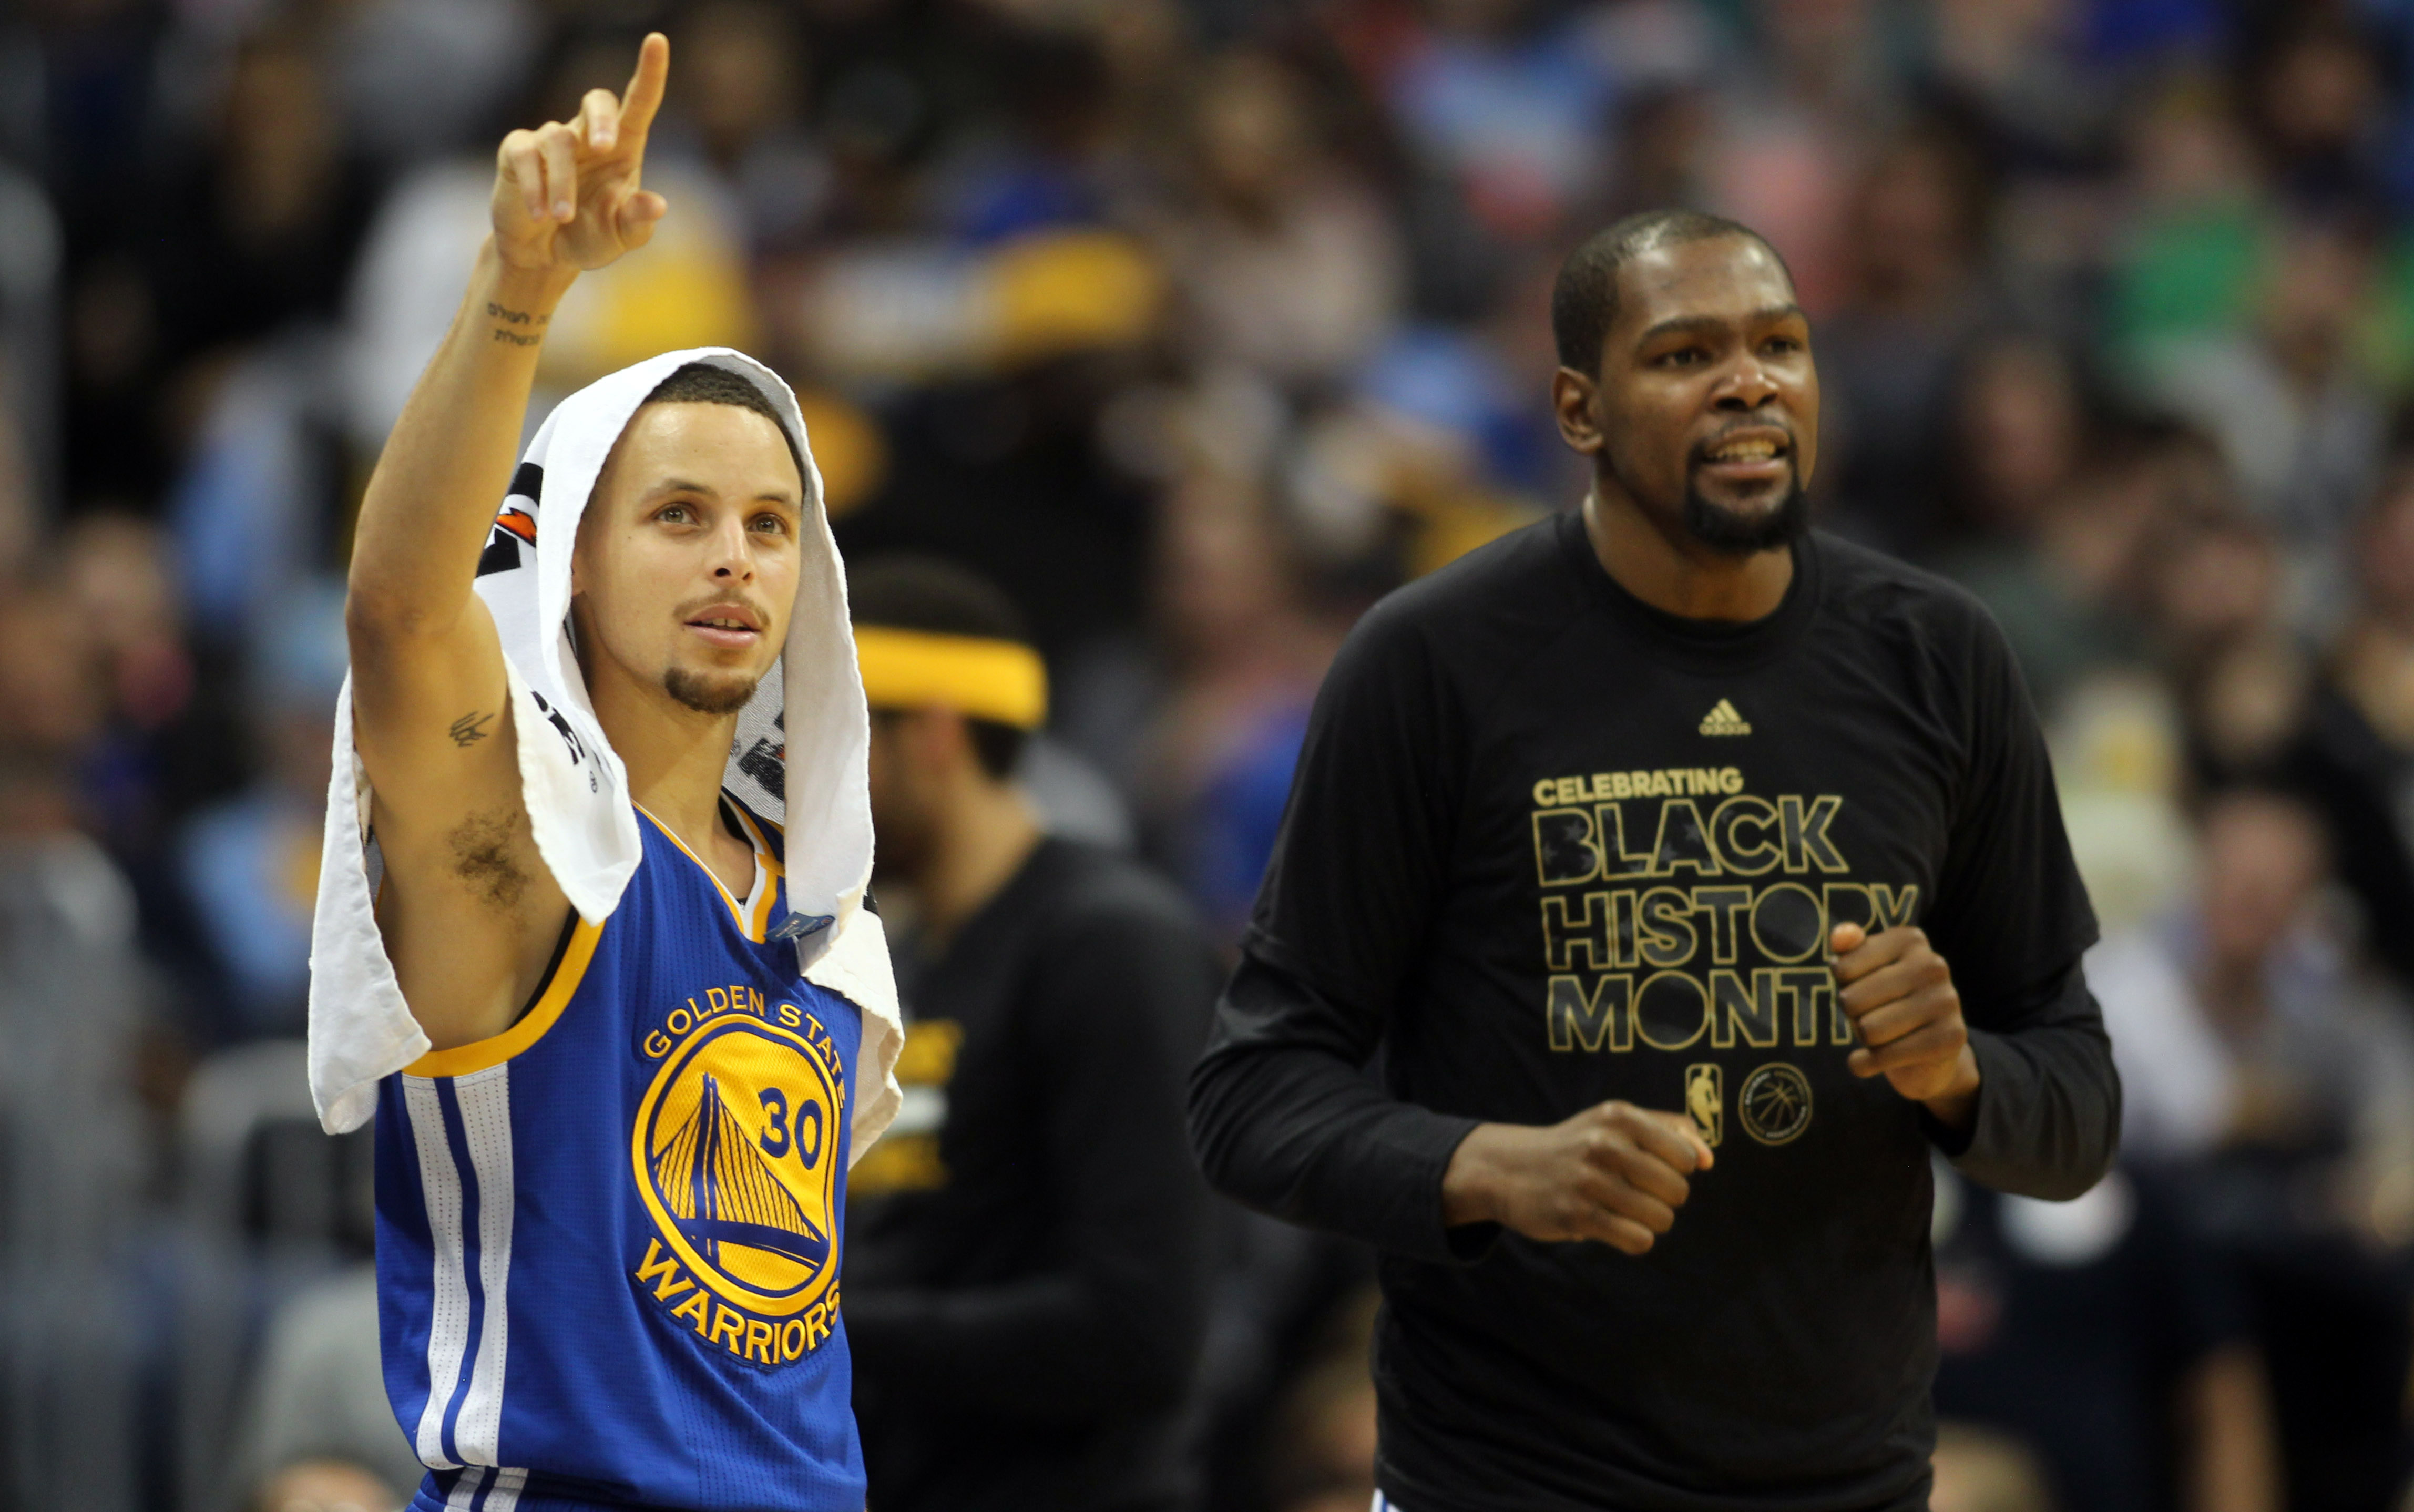 Feb 13, 2017; Denver, CO, USA; Golden State Warriors guard Stephen Curry (30) and Golden State Warriors forward Kevin Durant (35) react from the bench during the second half against the Denver Nuggets  at Pepsi Center. The Nuggets won 132-110. Mandatory Credit: Chris Humphreys-USA TODAY Sports